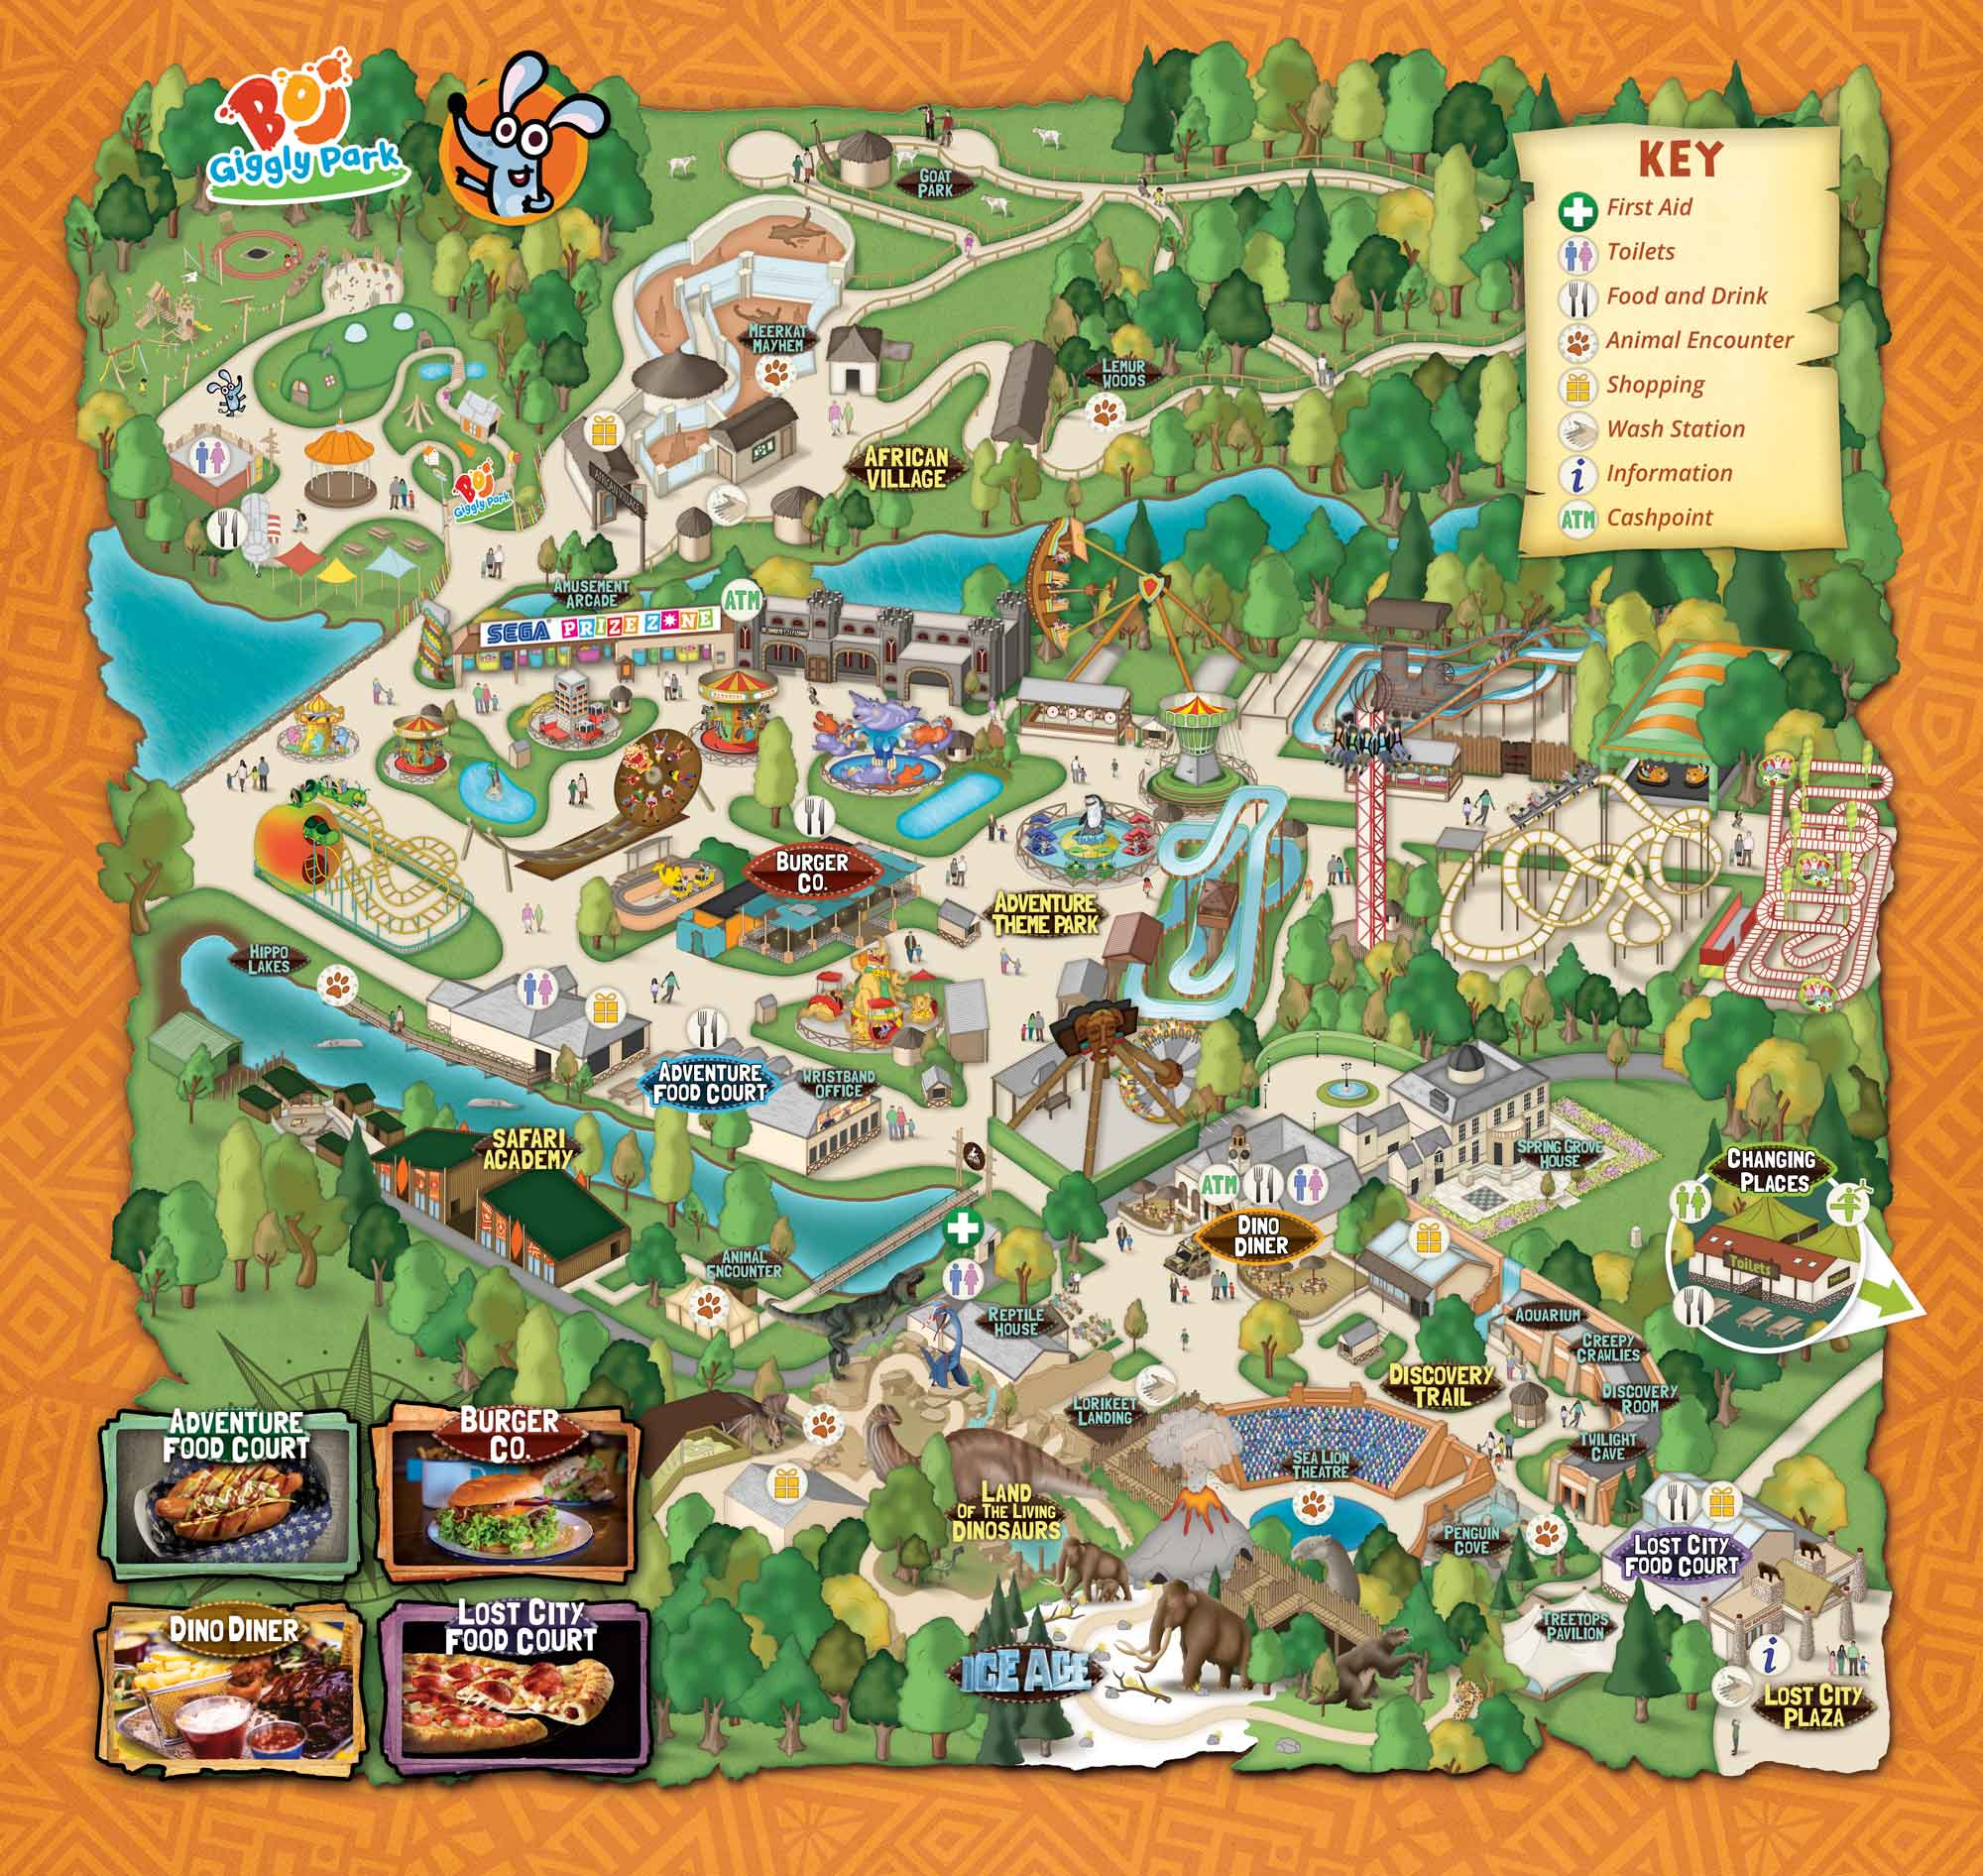 View The Walk-Through Park Map | West Midland Safari Park Map Co on nc map, ut map, mc map, ca map, sc map, mo map, or map, mn map, ihb map, pm2.5 map, de map, un map, cu map, la map, az map, colorado map, fl map, no map, sd map,